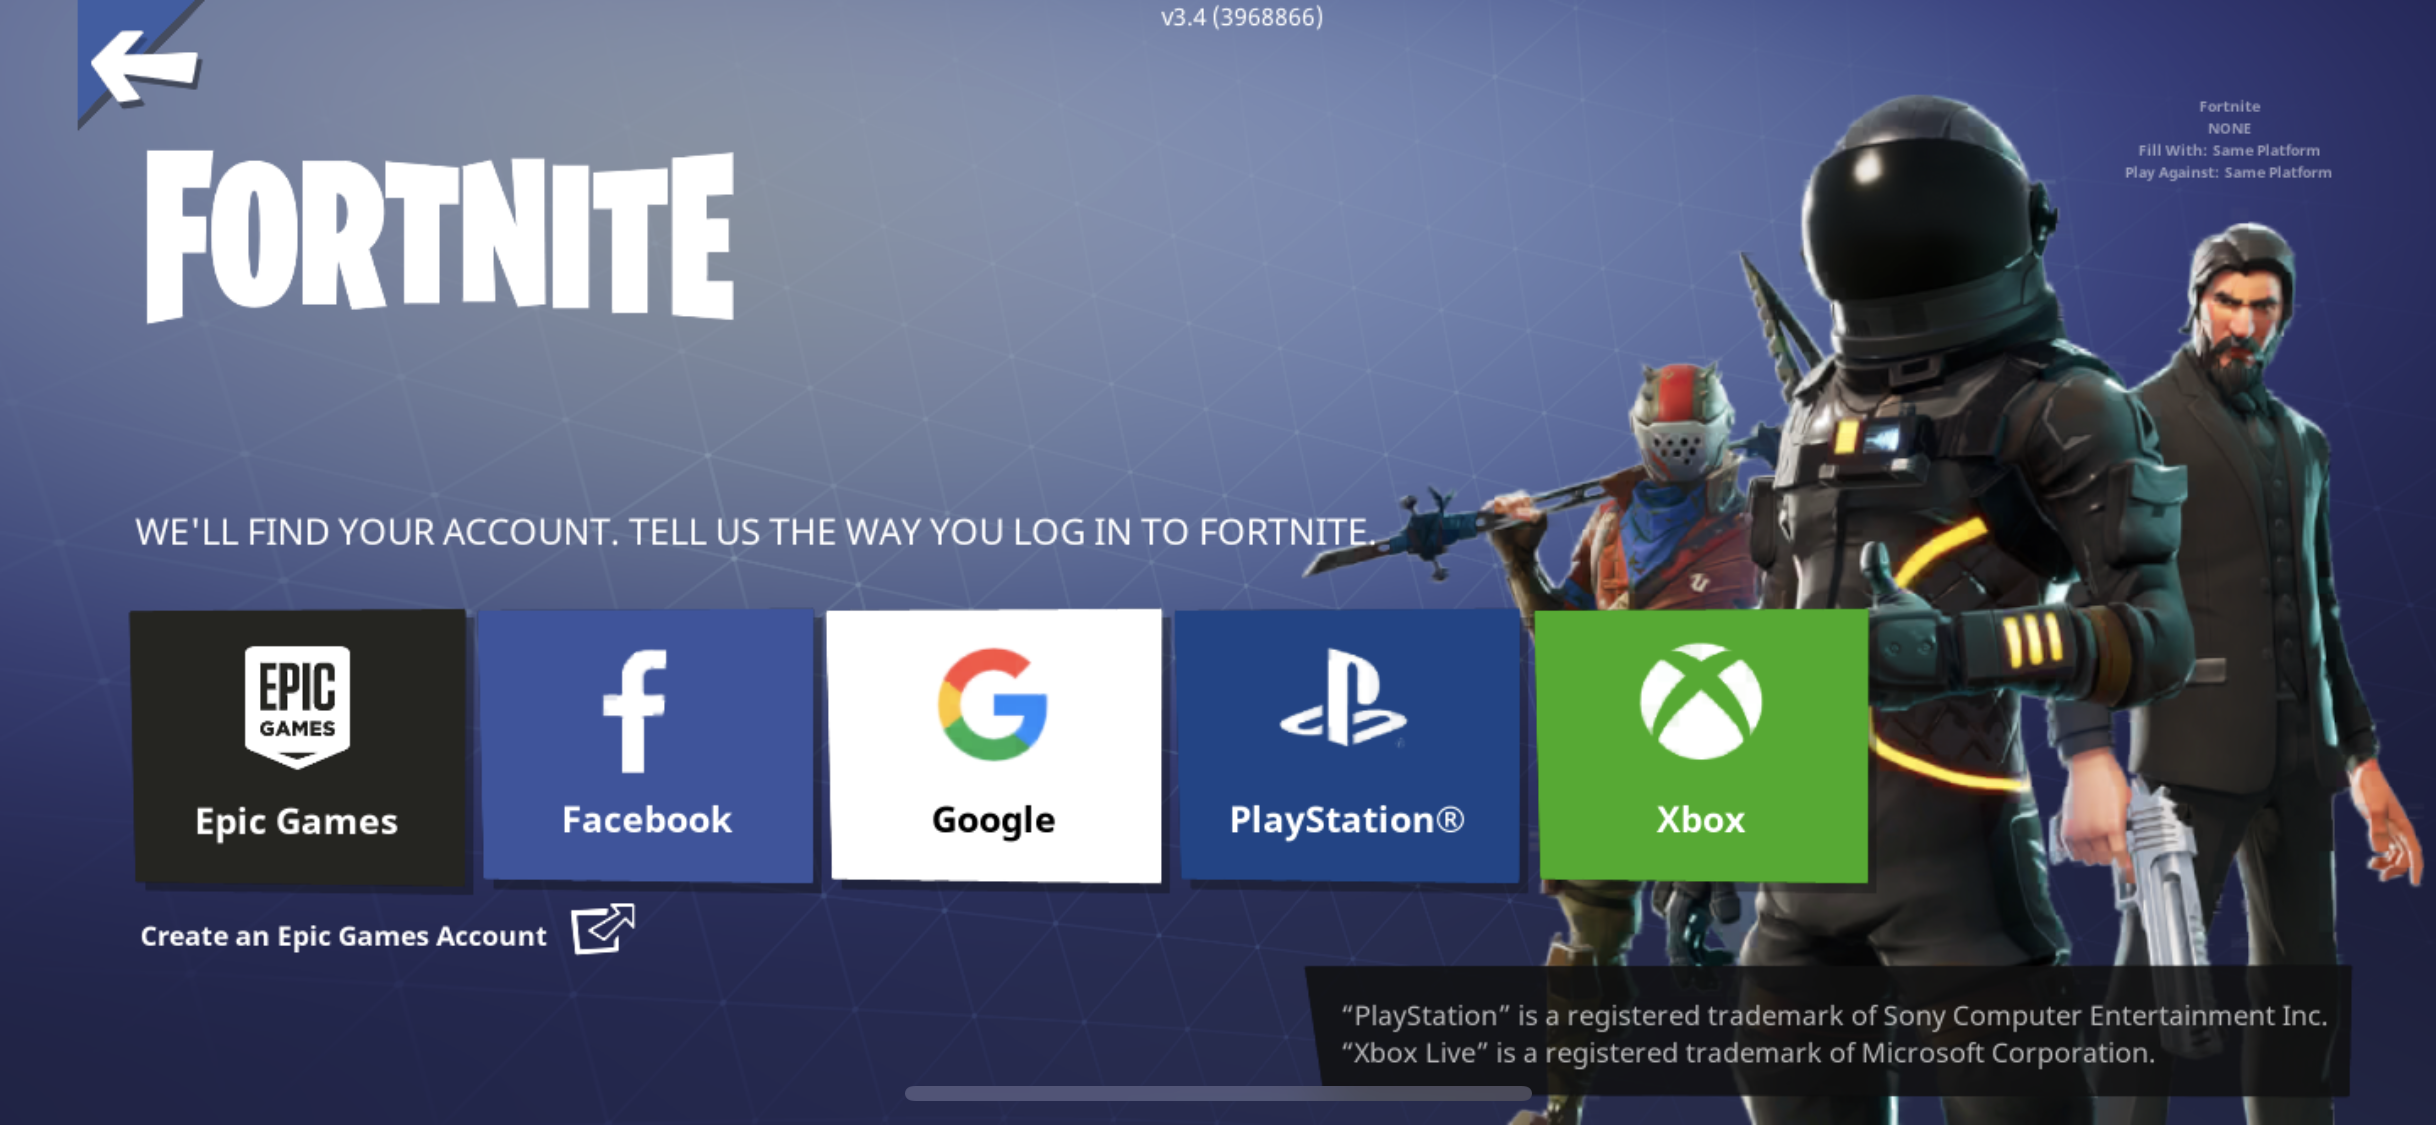 Fortnite ps4 mobile